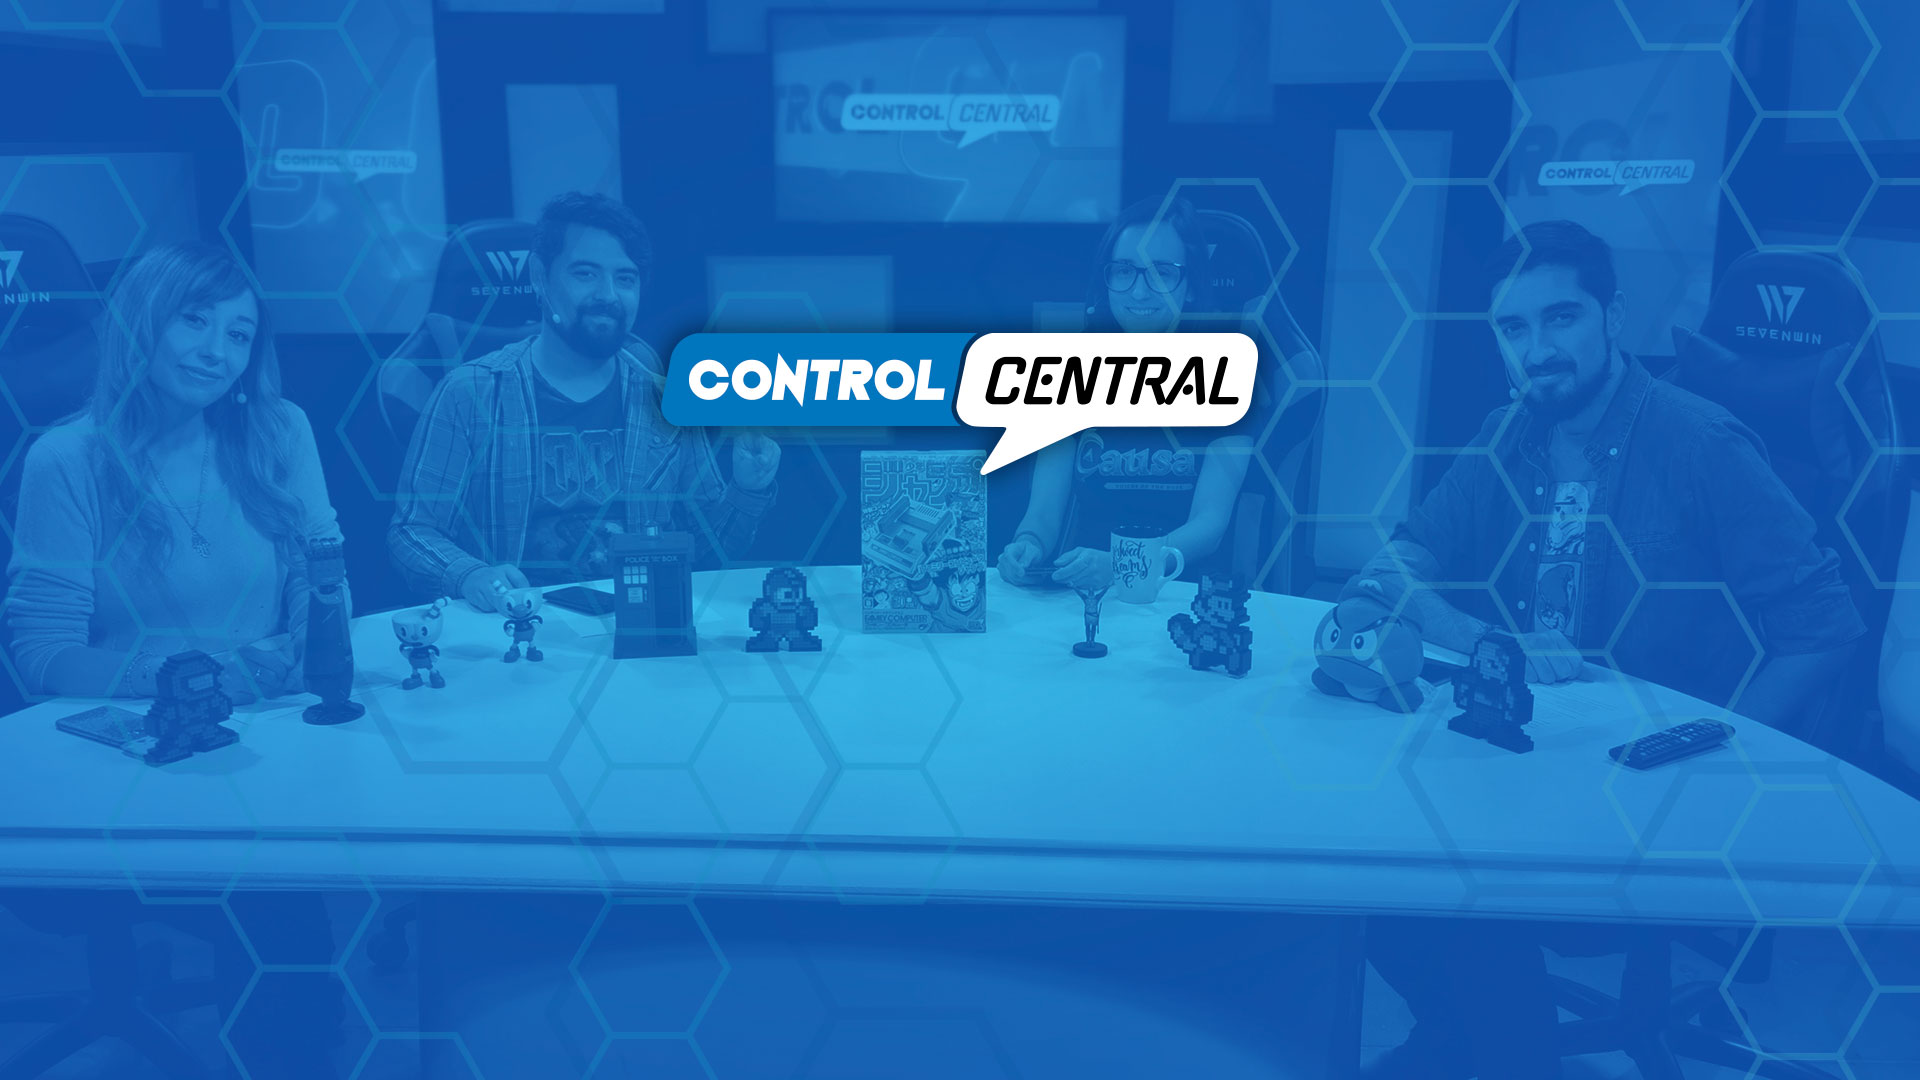 Control Central S02E03 - Invitada: Maureen Berho (Niebla Games)